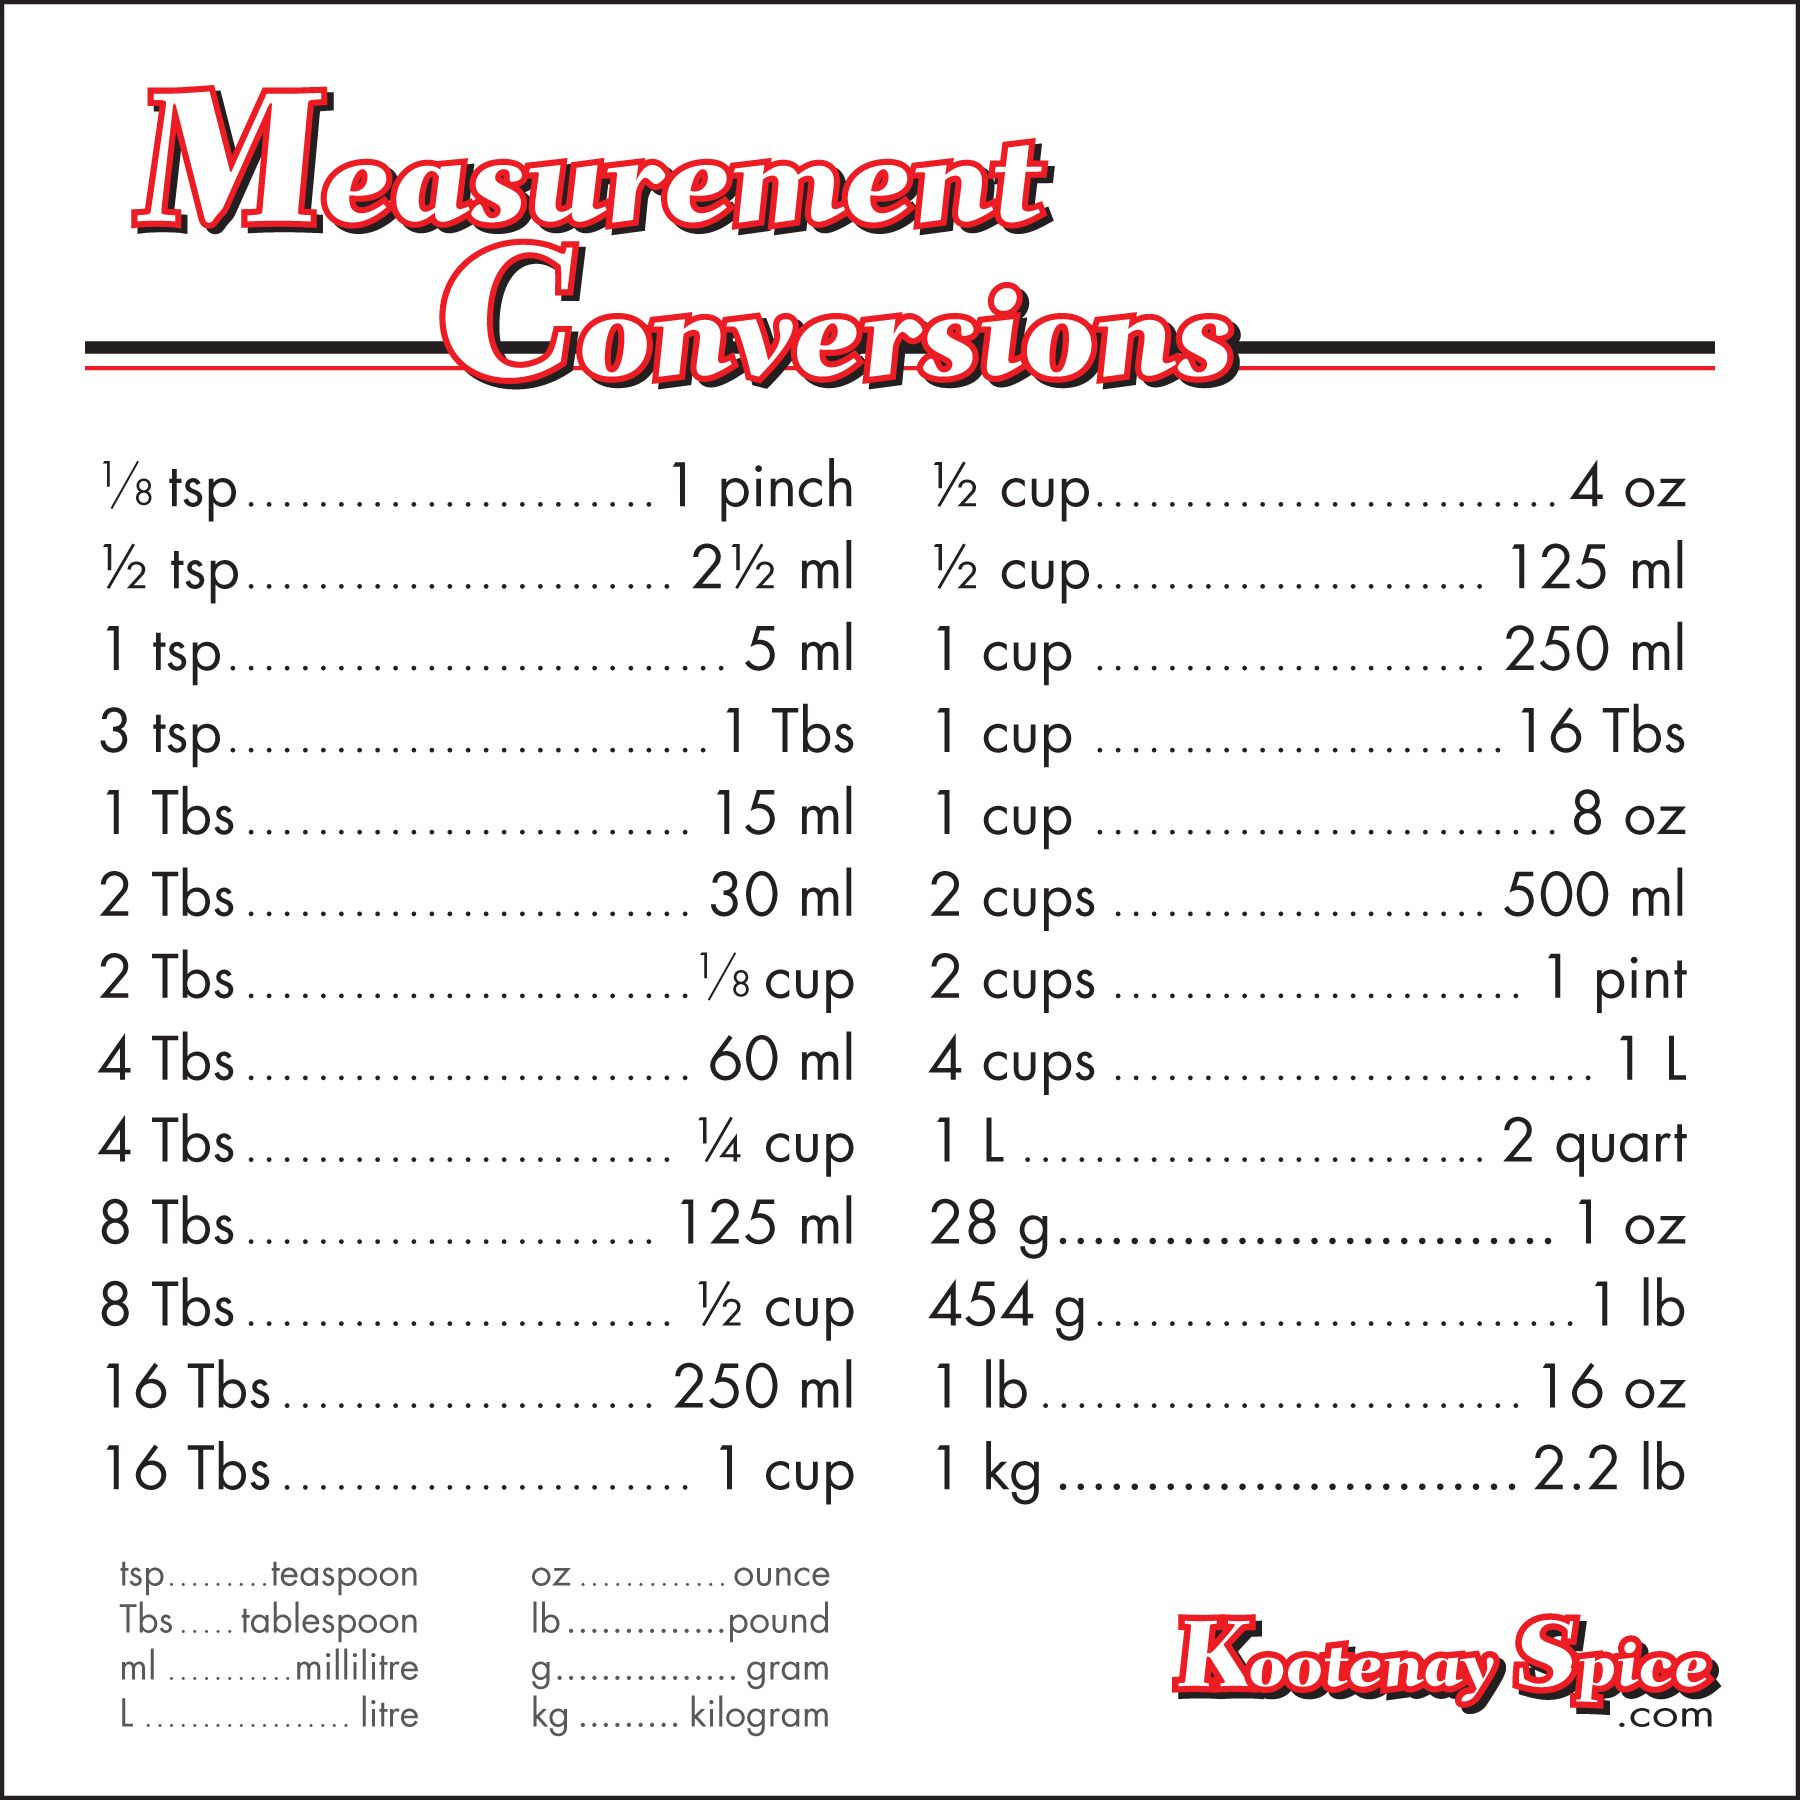 Measurement conversions kootenay spice bookmark or print this measurement conversions kootenay spice bookmark or print this out it is super useful measurement conversion chartkitchen nvjuhfo Gallery